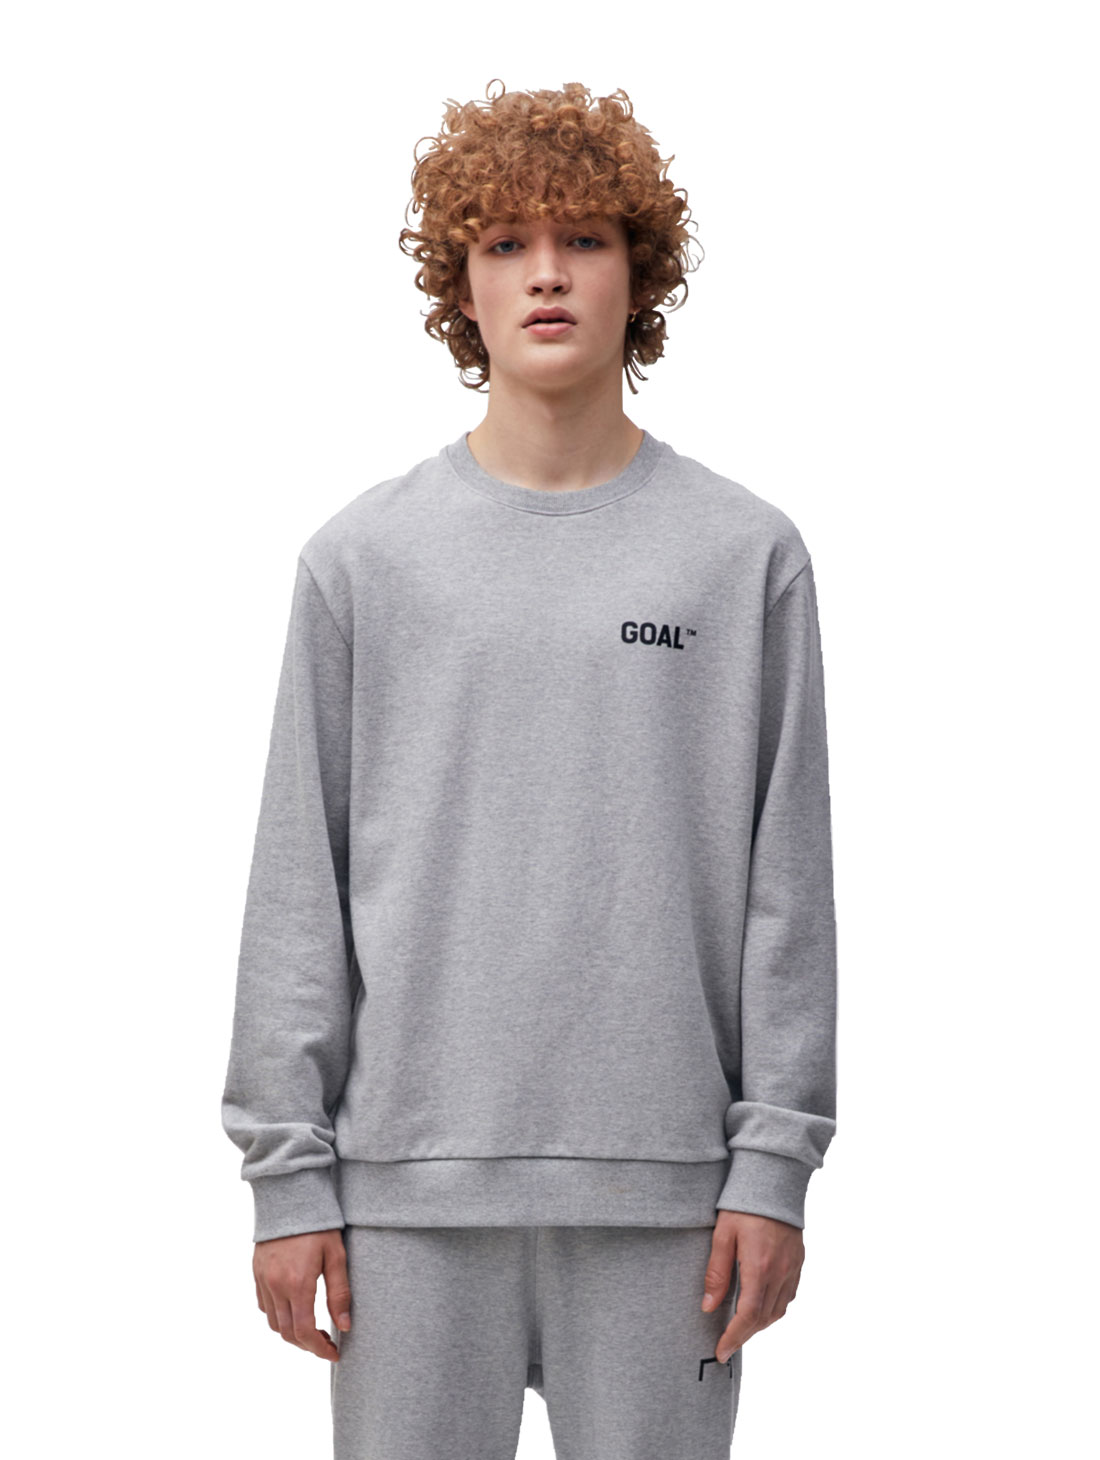 BACK LOGO SWEATSHIRT - GRAY